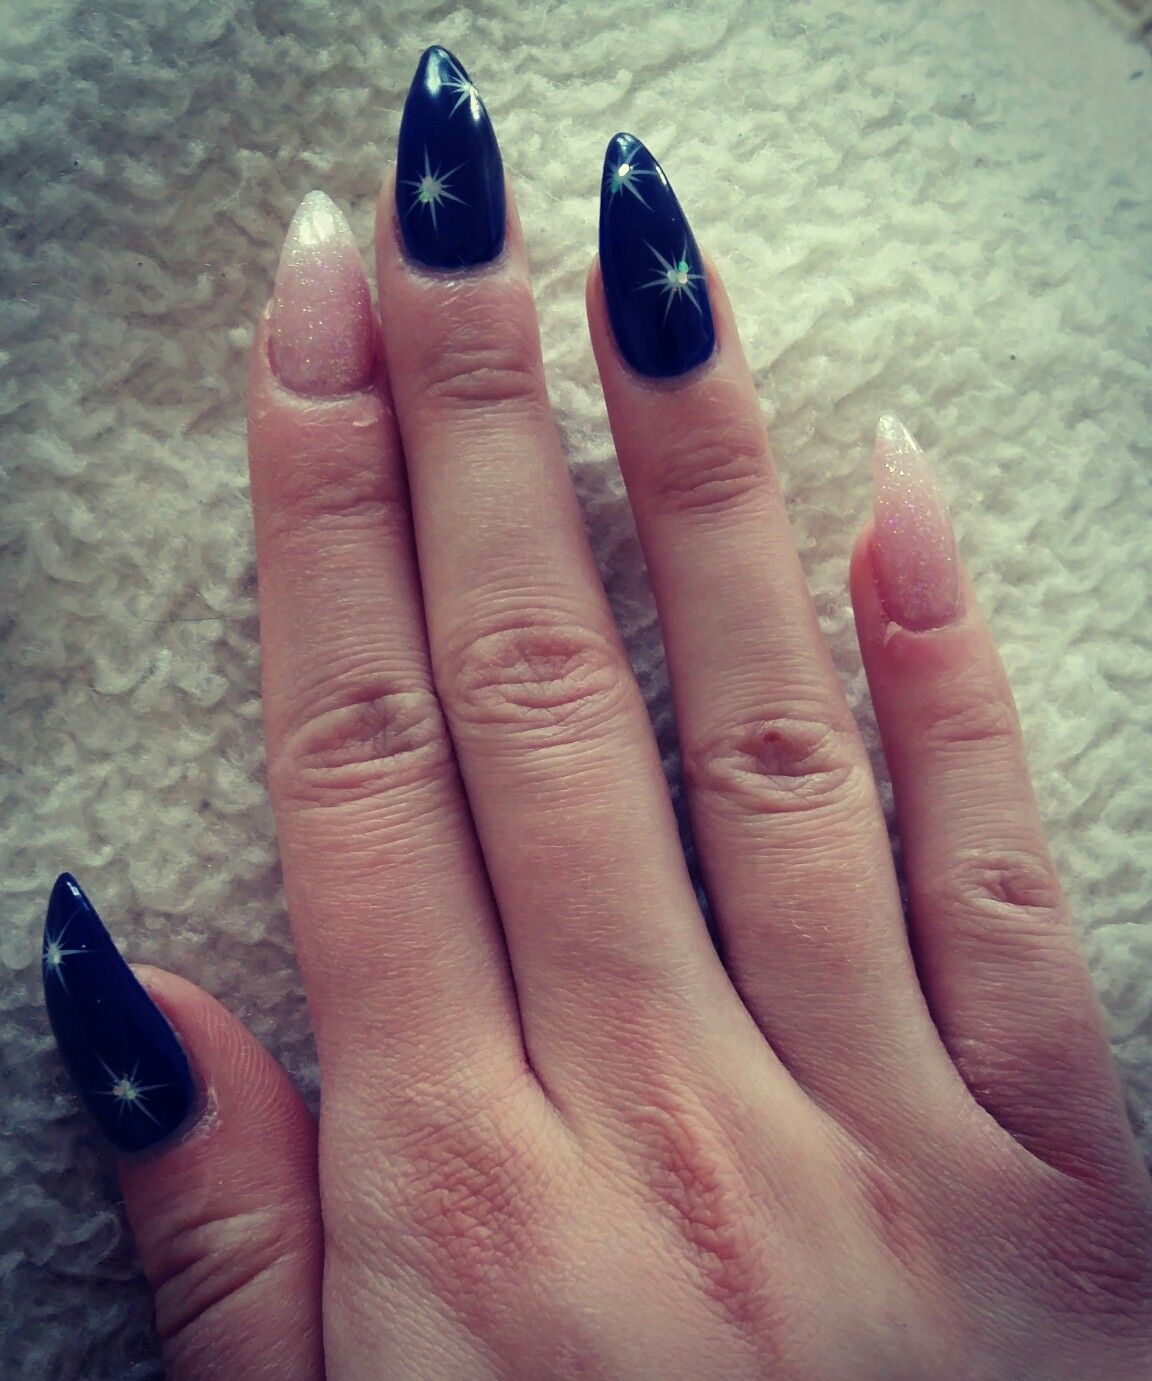 Pin by Sofia Ser on Nails | Pinterest | Manicure